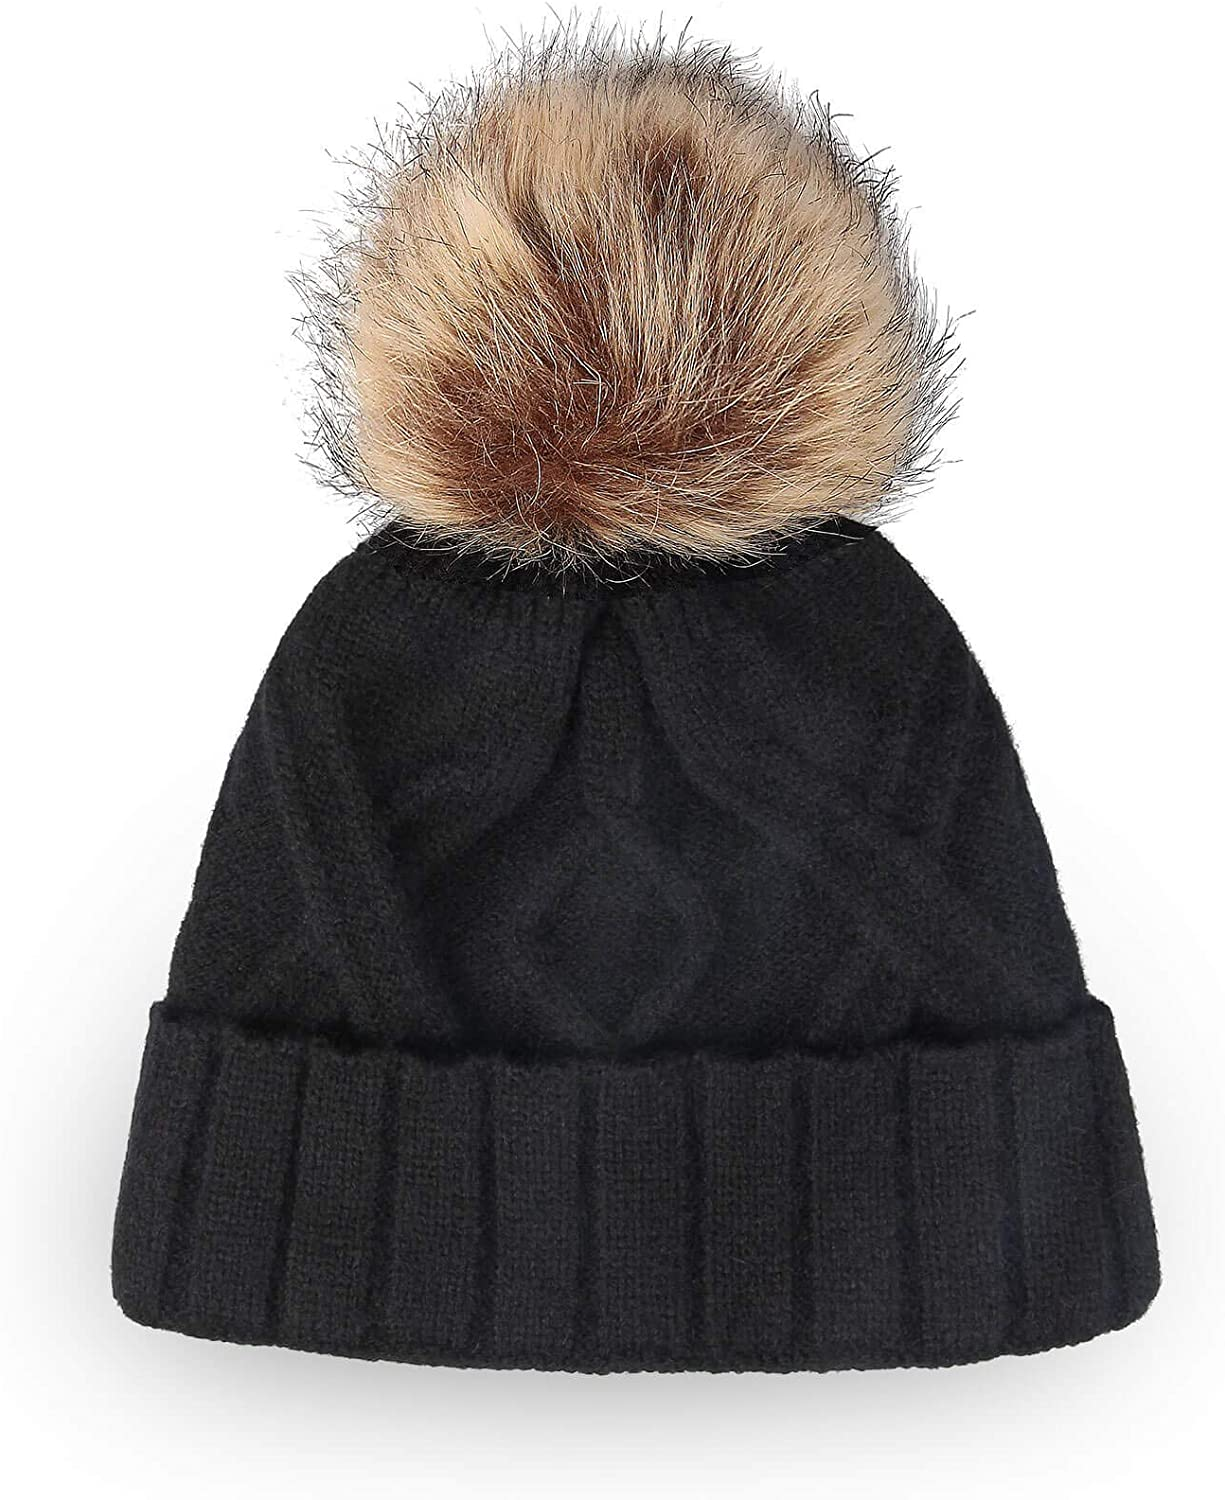 OZERO Winter Hats Beanie for Women, Knit Pom Pom Hat Thick Double Layer Fleece Warm Linning for Cold Weather